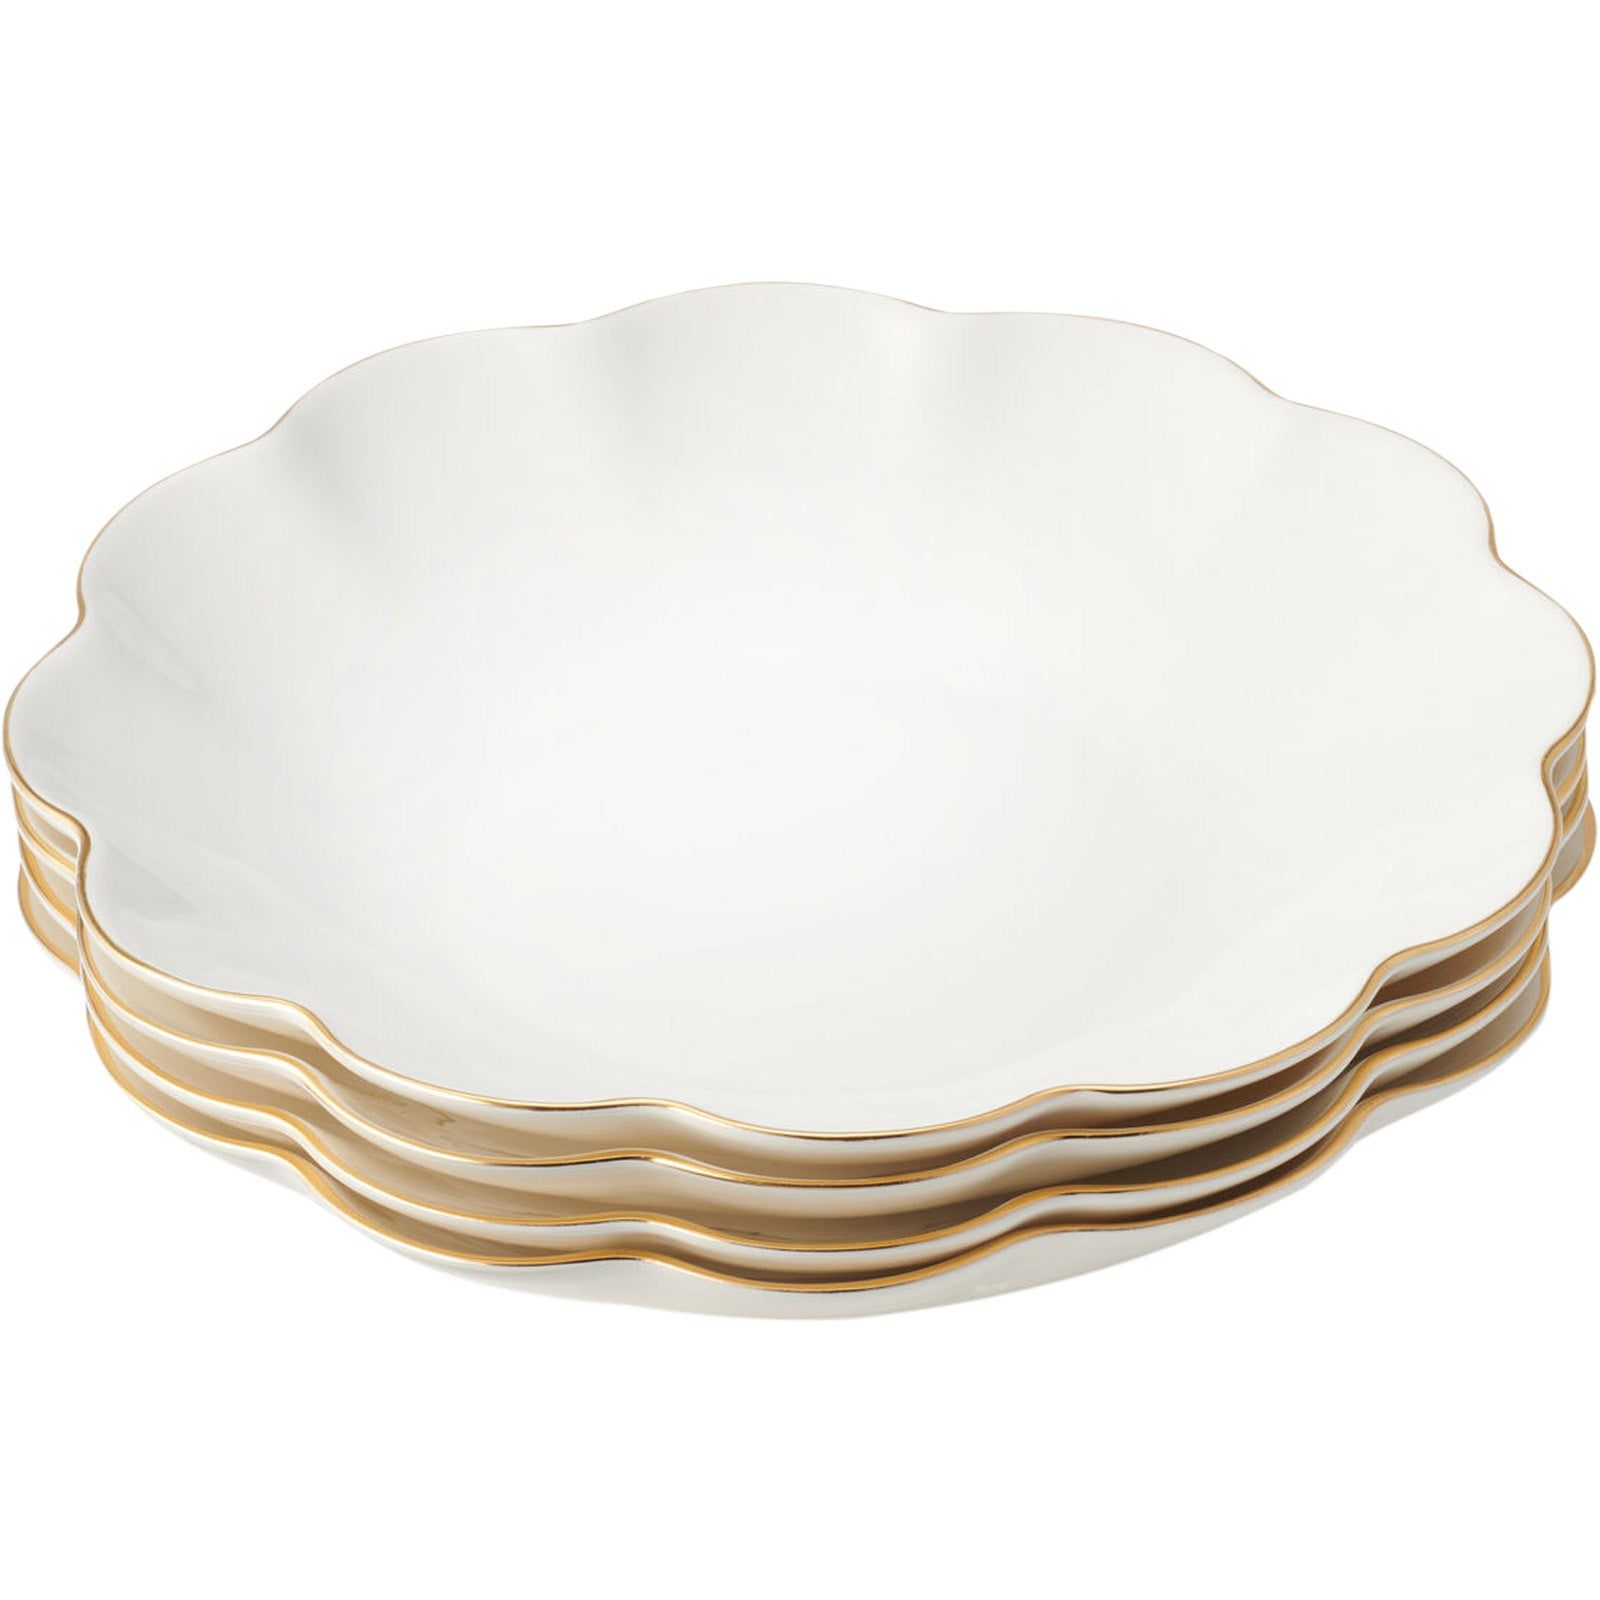 Set of 4 Scalloped Appetizer Plates